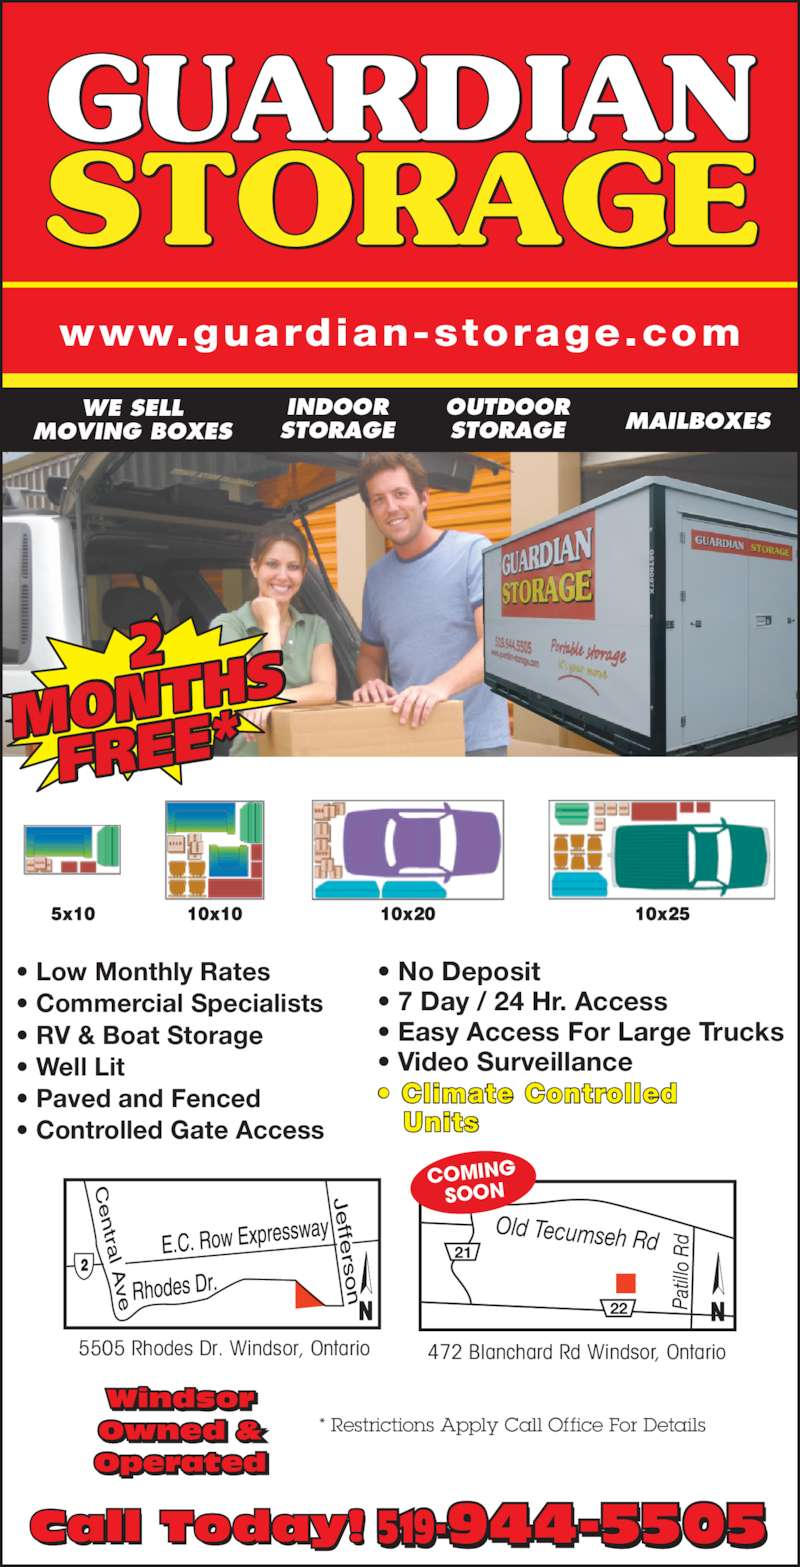 Guardian Storage (519-944-5505) - Display Ad - INDOOR STORAGE OUTDOOR STORAGE MAILBOXES WE SELL MOVING BOXES 5505 Rhodes Dr. Windsor, Ontario Old Tecumseh Rd dR ollitaP22 21 472 Blanchard Rd Windsor, Ontario COMING SOON Call Today! 519-944-5505- * Restrictions Apply Call Office For Details Windsor Owned & Operated • Low Monthly Rates • Commercial Specialists • RV & Boat Storage • Well Lit • Paved and Fenced • Controlled Gate Access • No Deposit • 7 Day / 24 Hr. Access • Easy Access For Large Trucks • Video Surveillance • Climate Controlled    Units www.guardian-storage.com MONTH FREE*